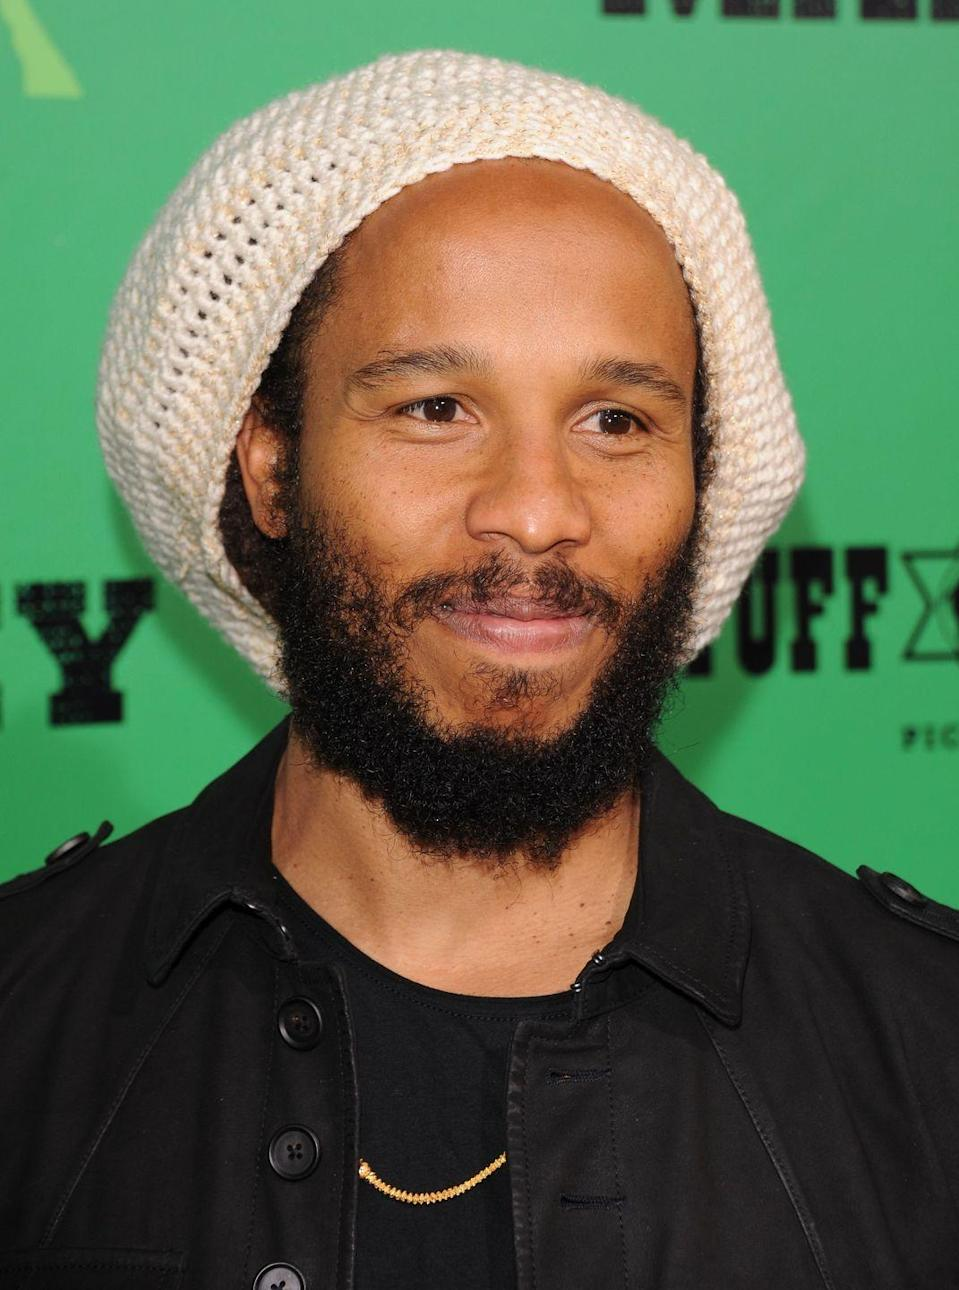 "<p><strong>Famous parent(s)</strong>: musician Bob Marley<br><strong>What it was like</strong>: ""I grew up with Dad before he was this well-known person. I was born before he was famous, you know?"" he <a href=""http://people.com/music/ziggy-marley-remembers-life-reggae-icon-dad-bob-marley-just-my-father/"" rel=""nofollow noopener"" target=""_blank"" data-ylk=""slk:said"" class=""link rapid-noclick-resp"">said</a>. ""We grew up seeing just my father, a working musician with ideas and messages and ups and downs."" </p>"